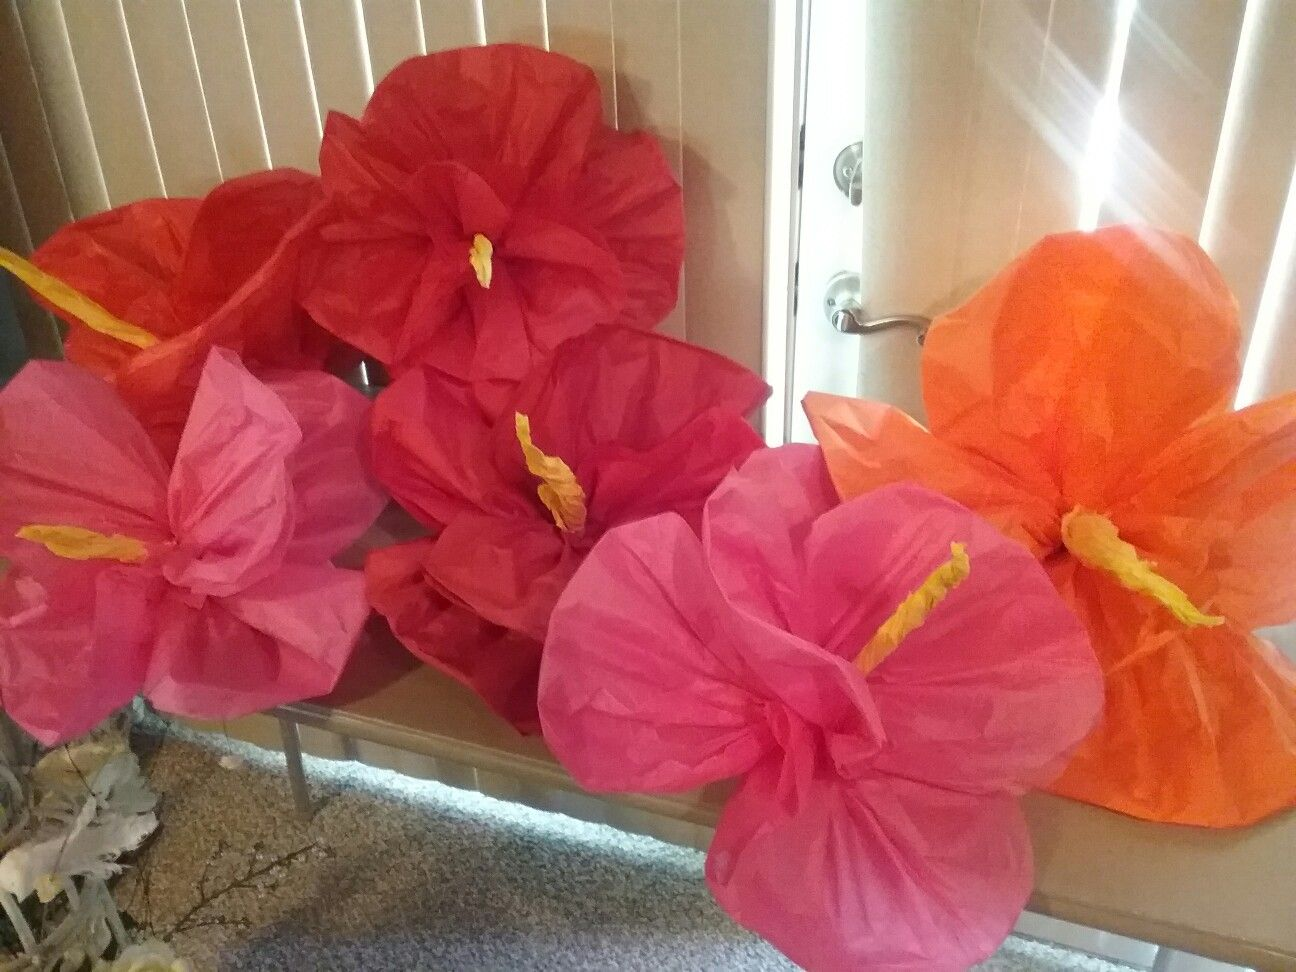 Tissue paper hibiscus inspirations by kathy pinterest luau tissue paper hibiscus hawaiian party decorations hawaiian parties hawaiian theme tiki party izmirmasajfo